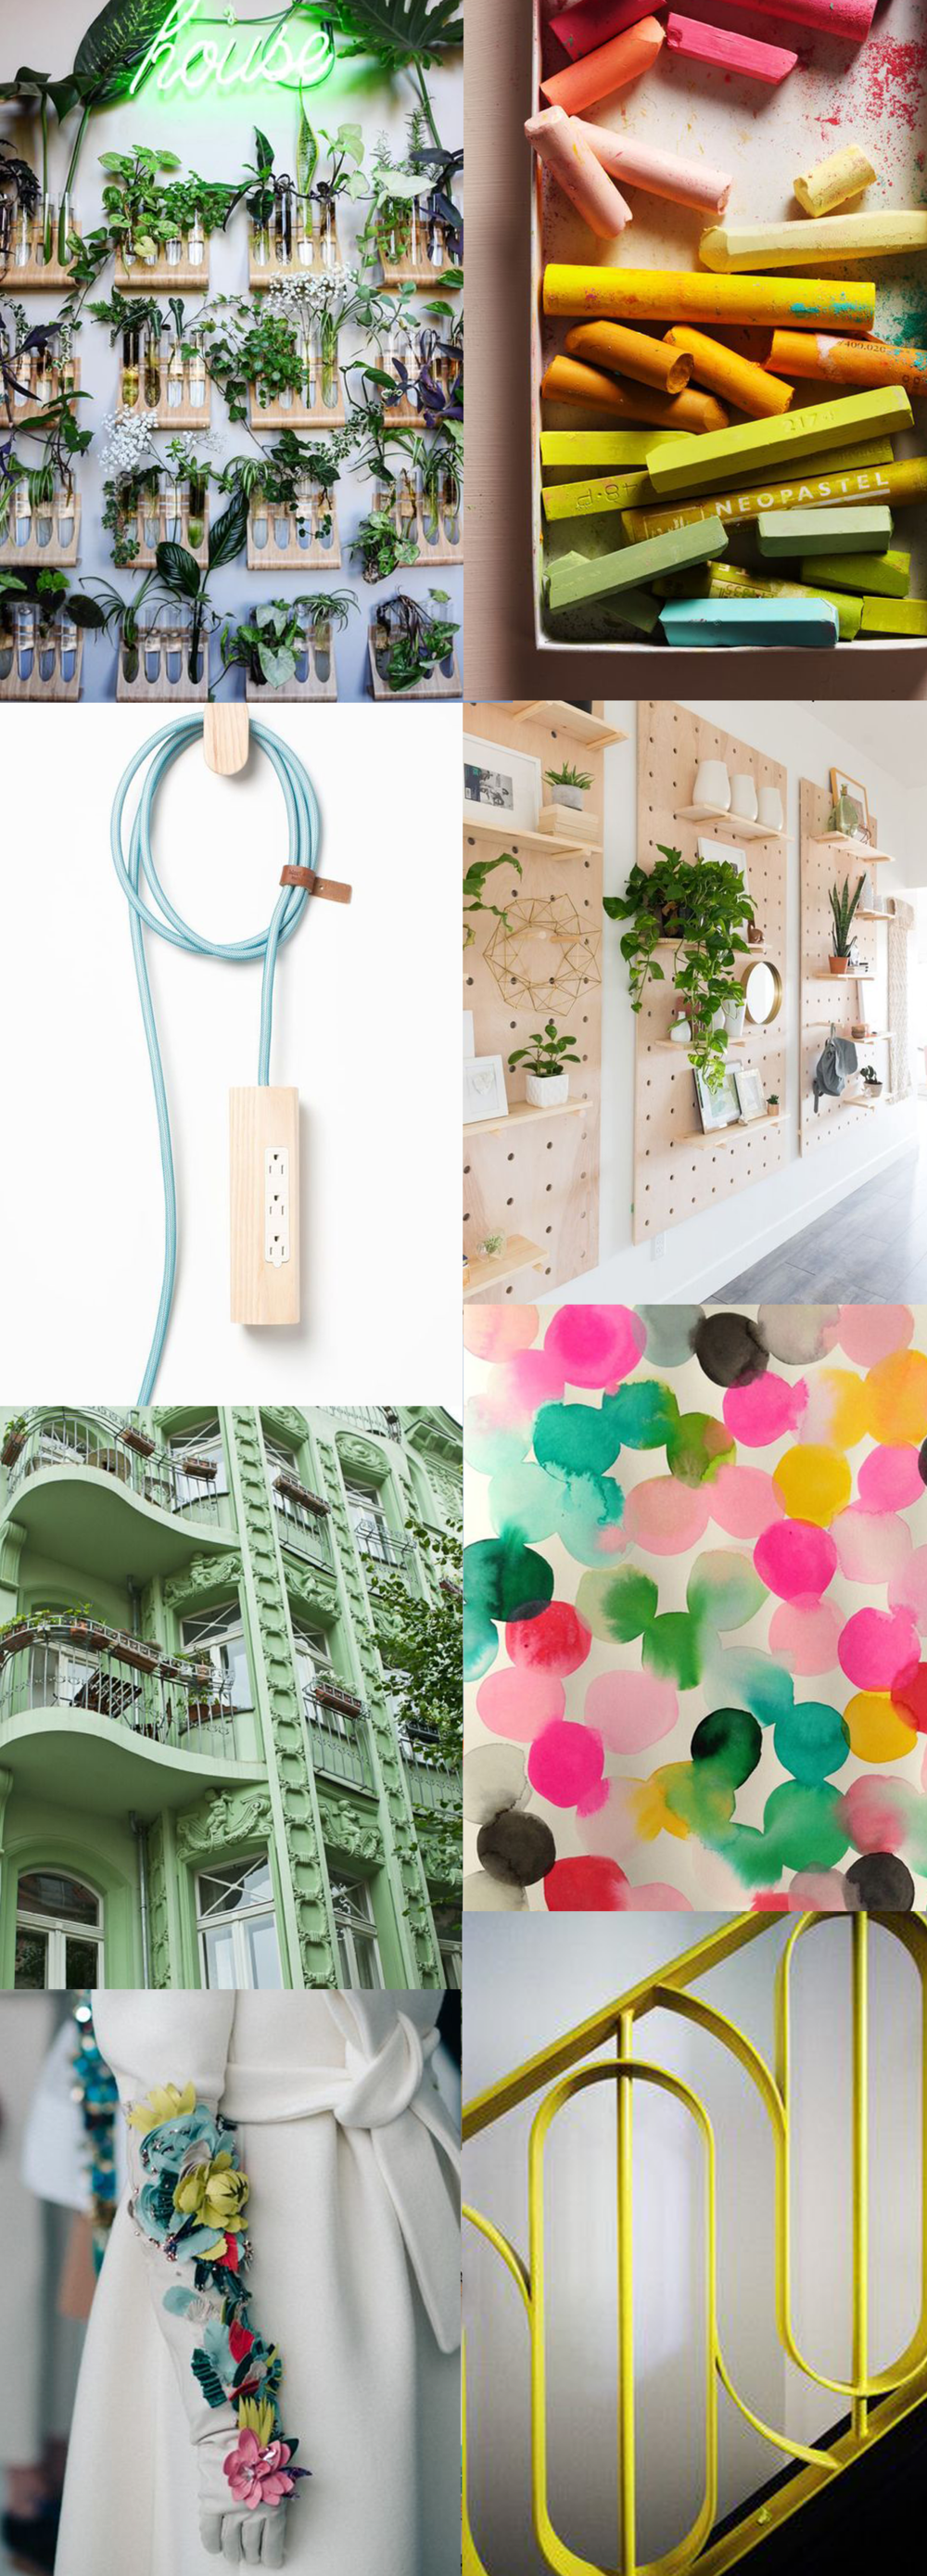 plant wall, pastels, extension cord, pegboard, building, dots, floral glove, stairs